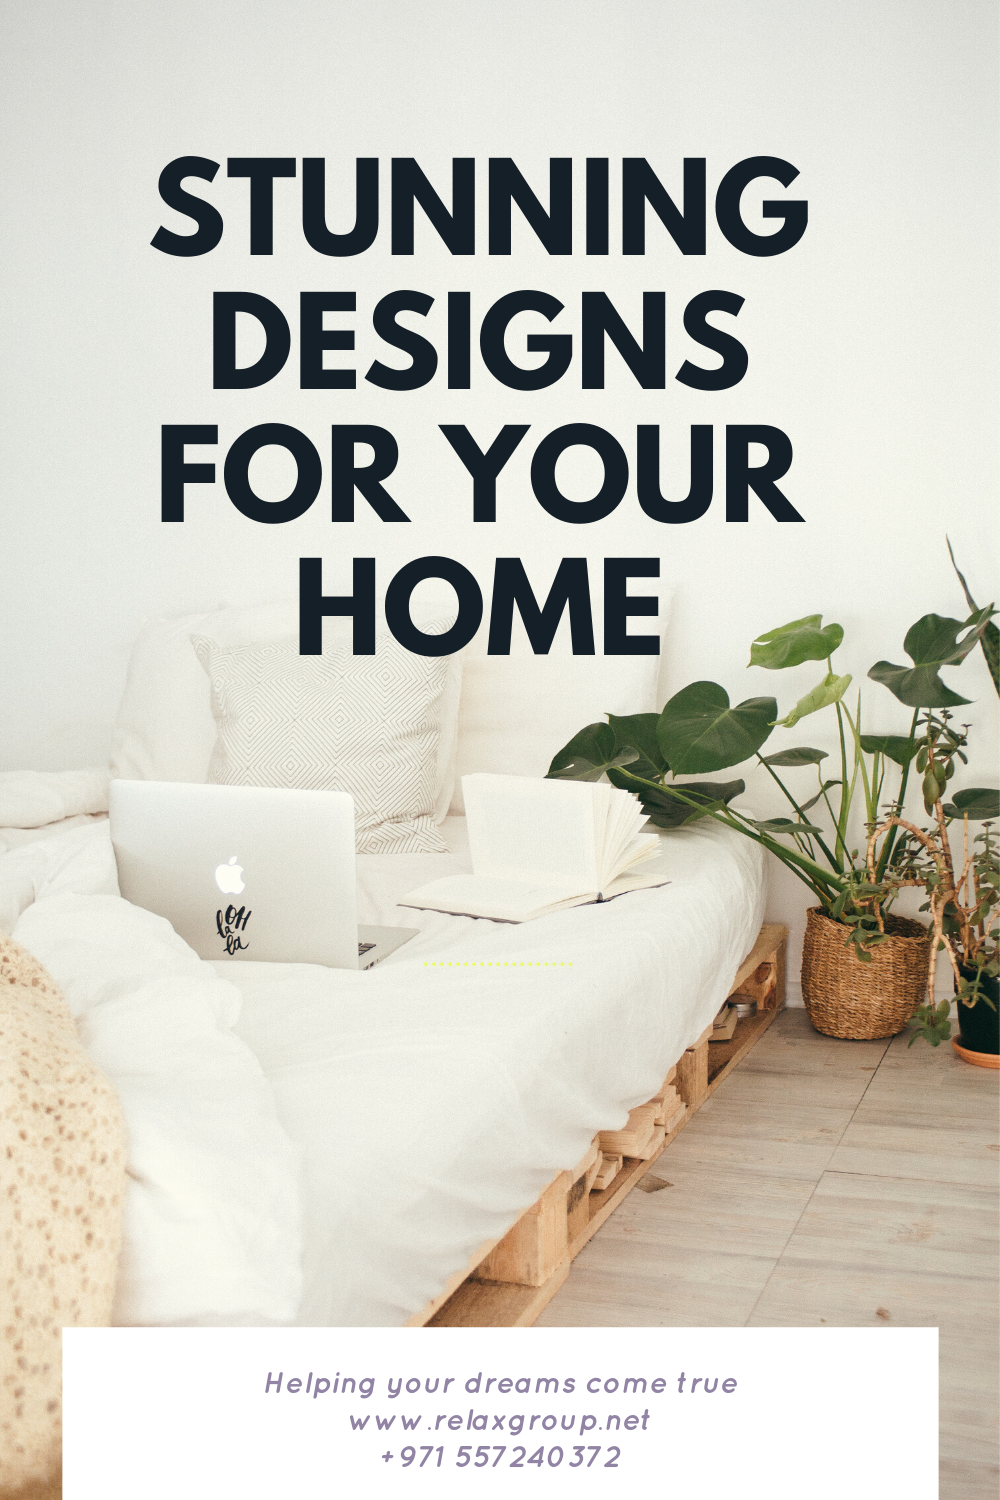 Creating stunning designs is easy when it is out of passion and love for interior. #interior #decor #simple #simpleinterior #simpledecor #brightdecor #livingroom